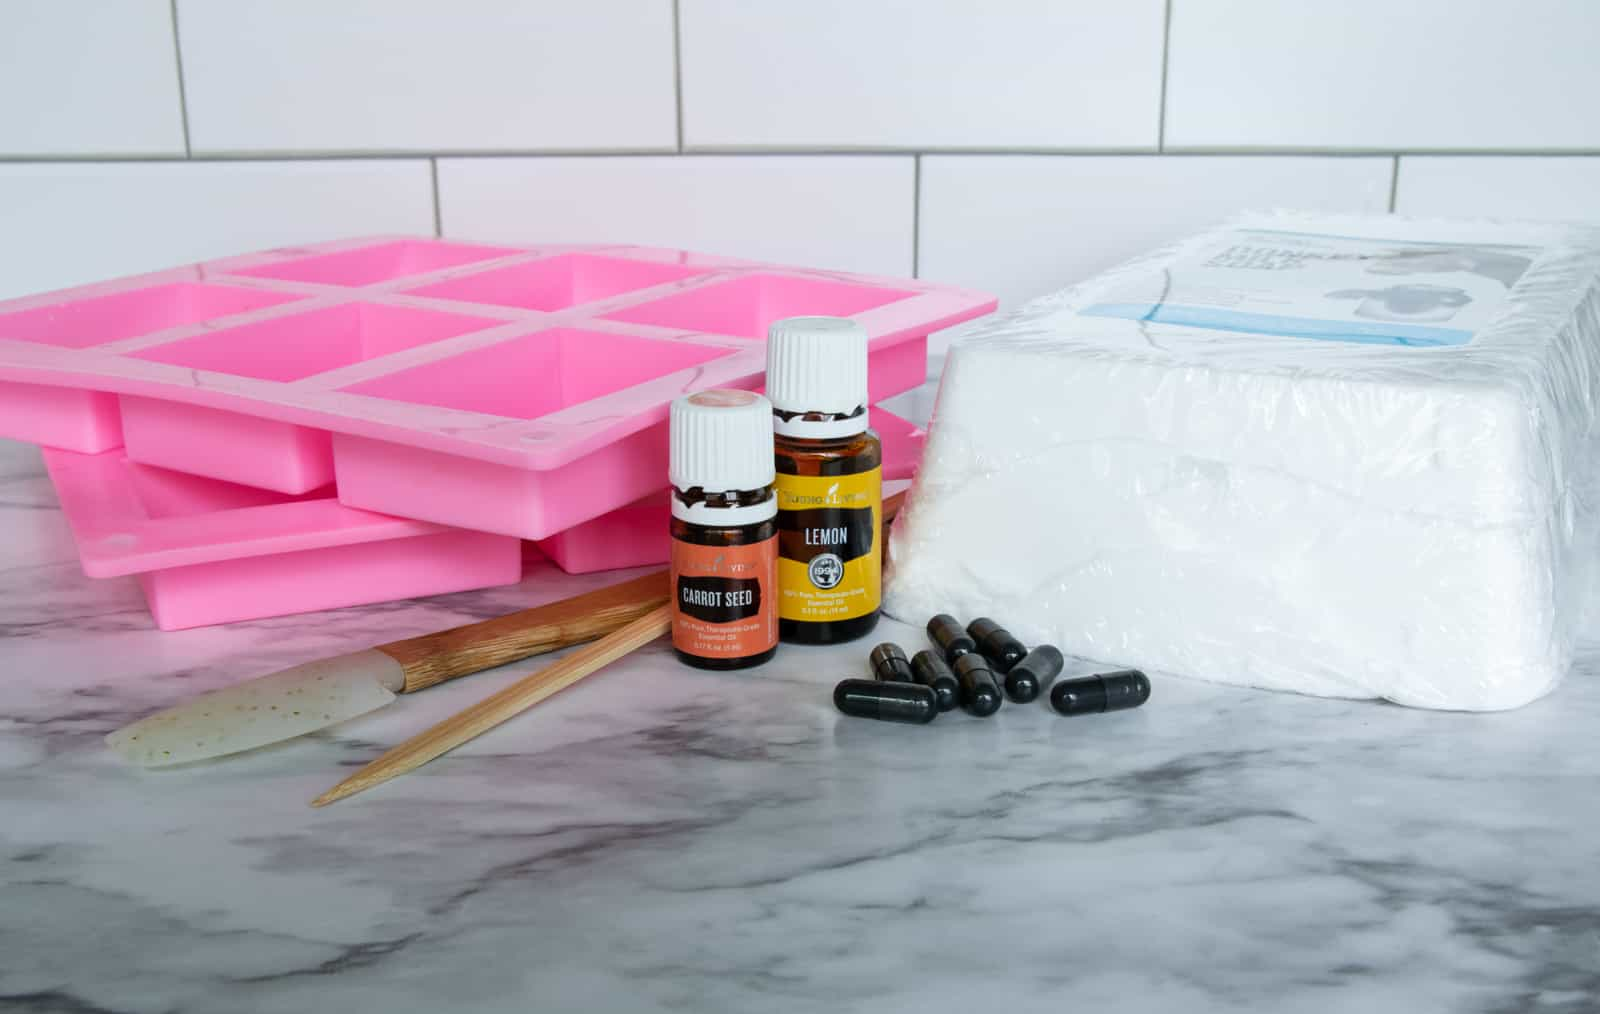 silicone soap molds, activated charcoal capsules, essential oils, tools and pour and melt soap block